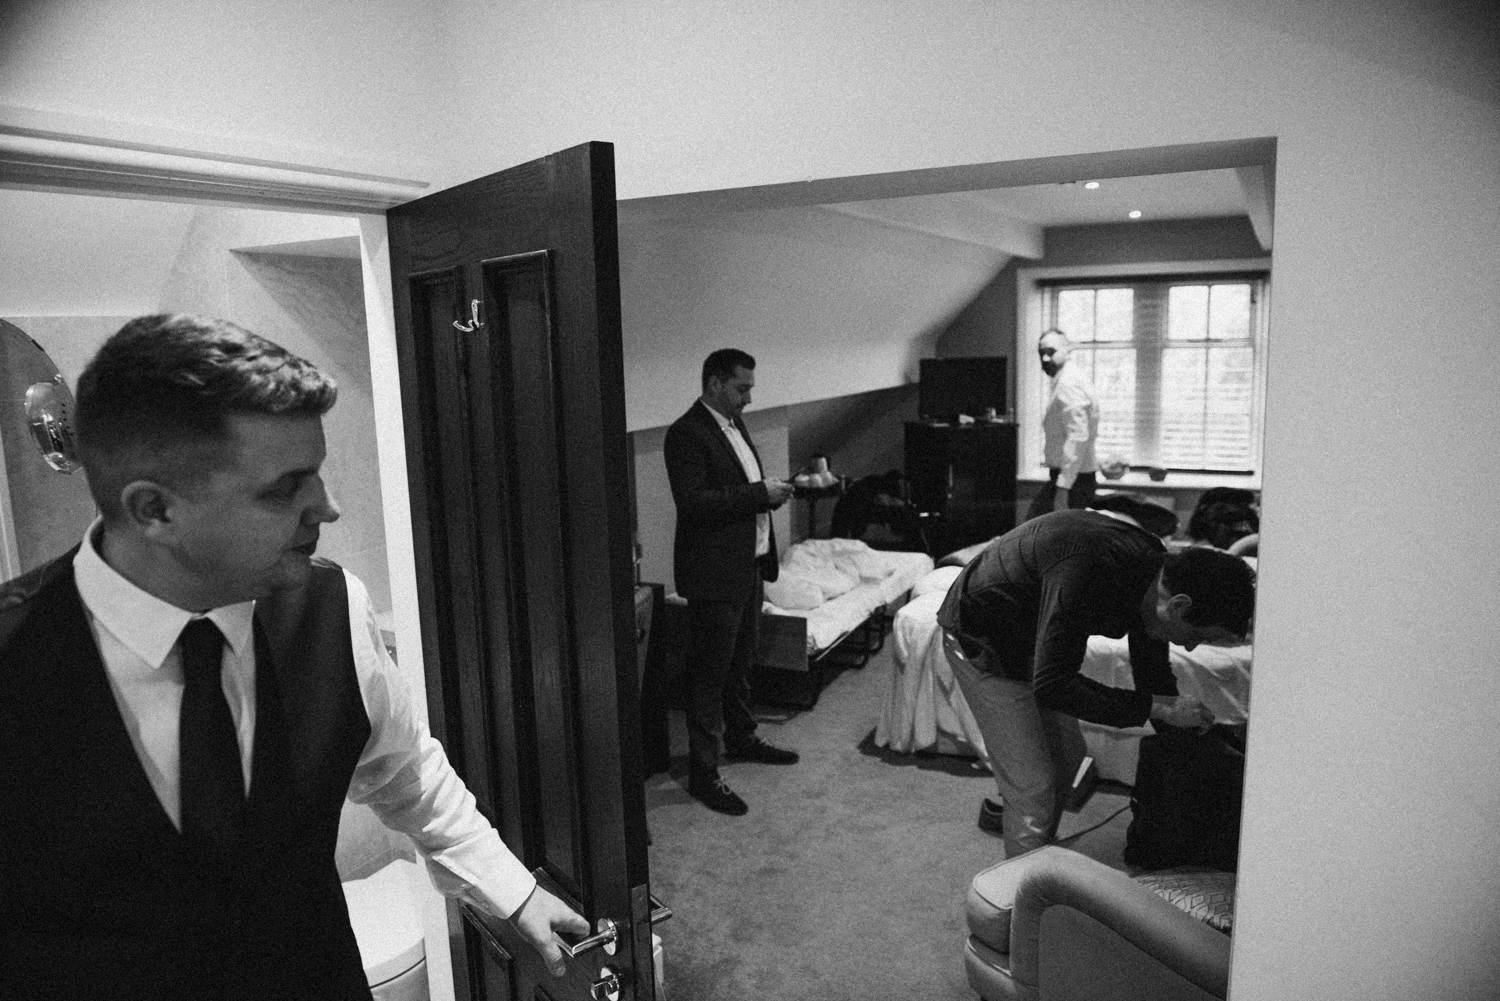 Grooms party getting ready at leeds wedding venue